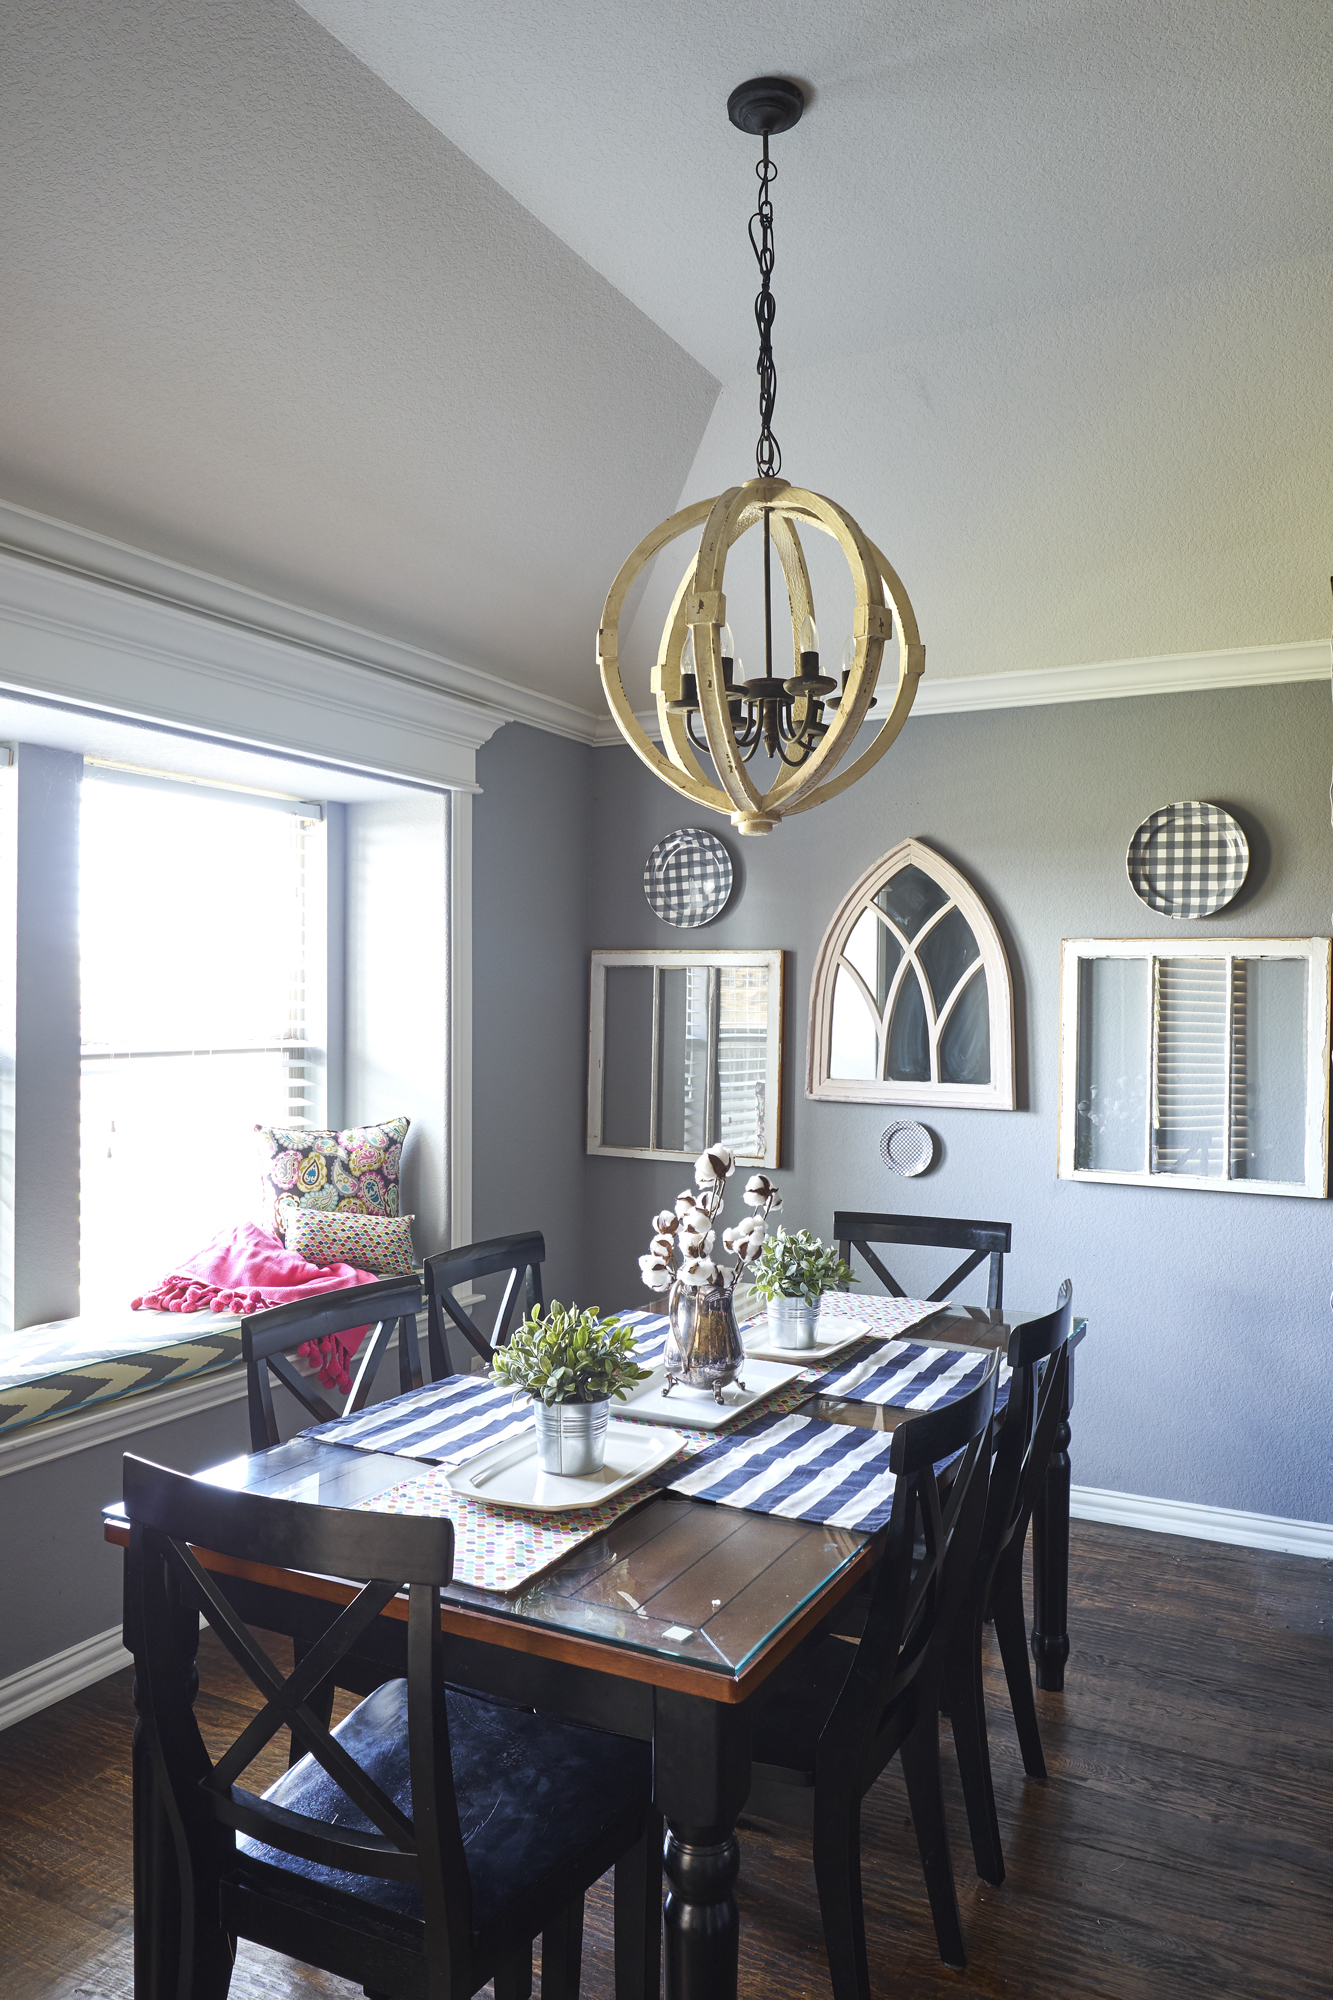 It Wasn T The Farmhouse Style Kitchen Homeowner Wanted Design To Trickle Into Dining Room